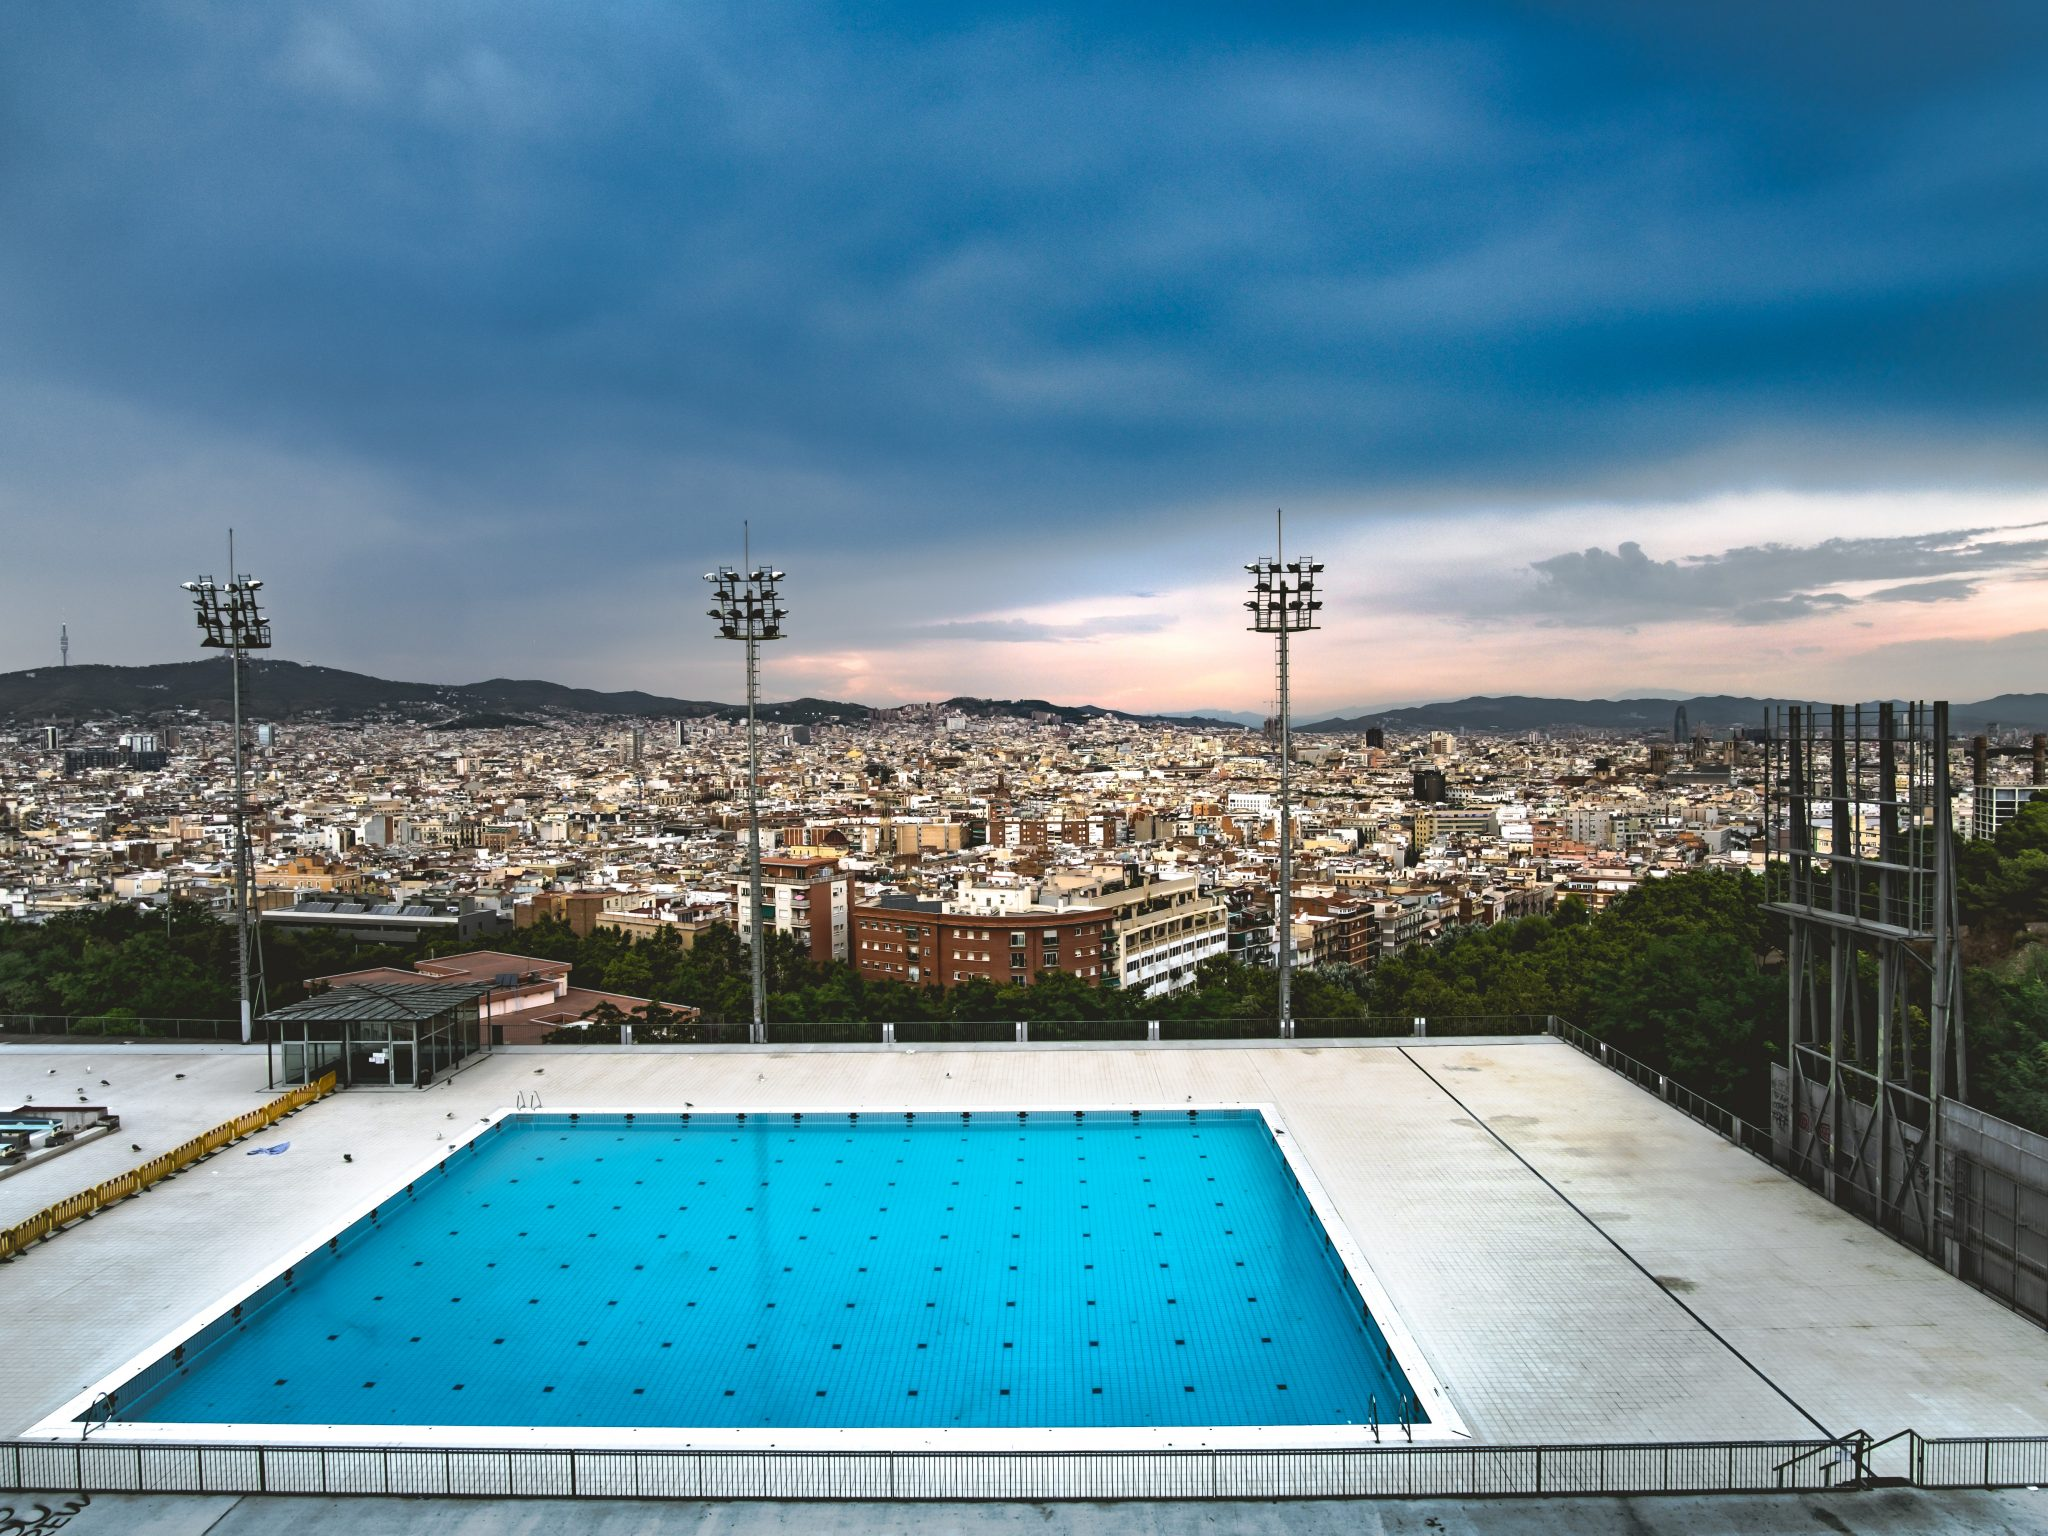 Olympic pool in Barcelona photo by Jo Kassis